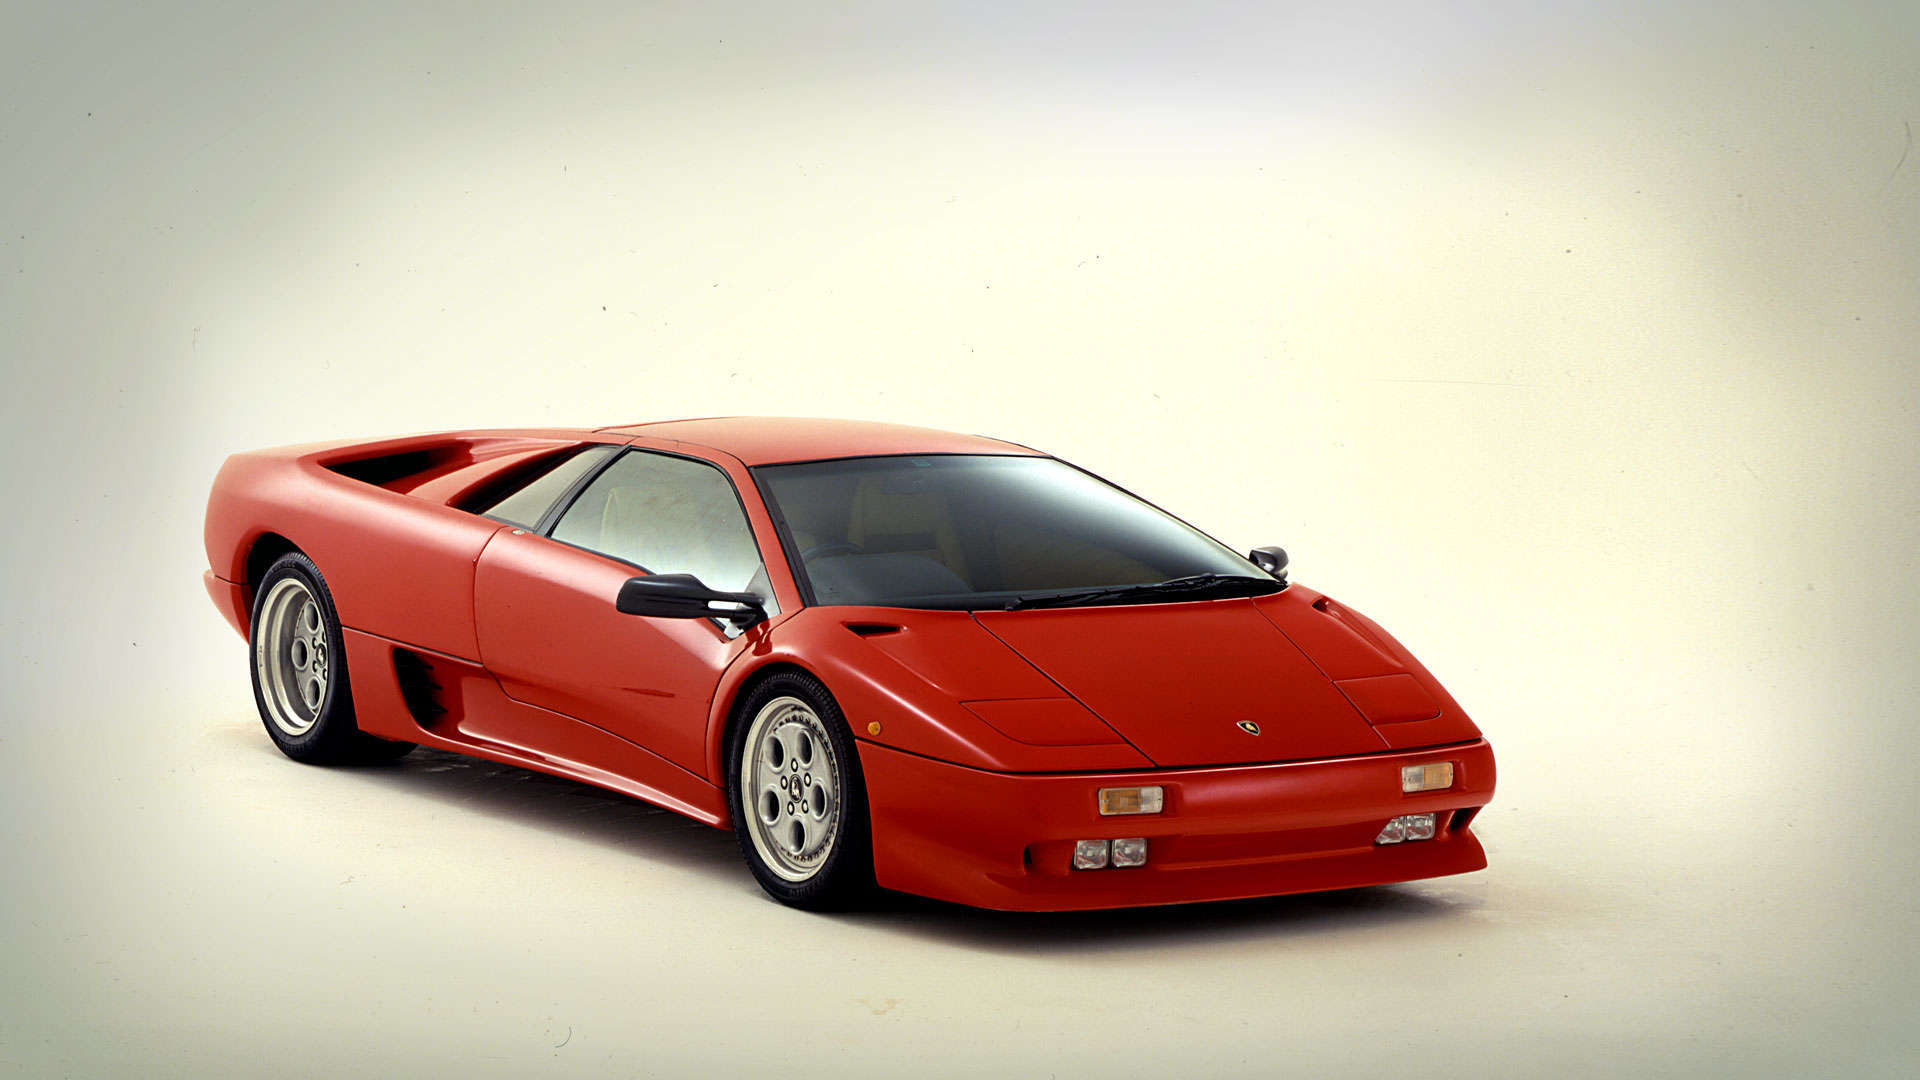 Download 1990 Lamborghini Diablo HD Wallpaper 1080p HDWallWidecom 1920x1080